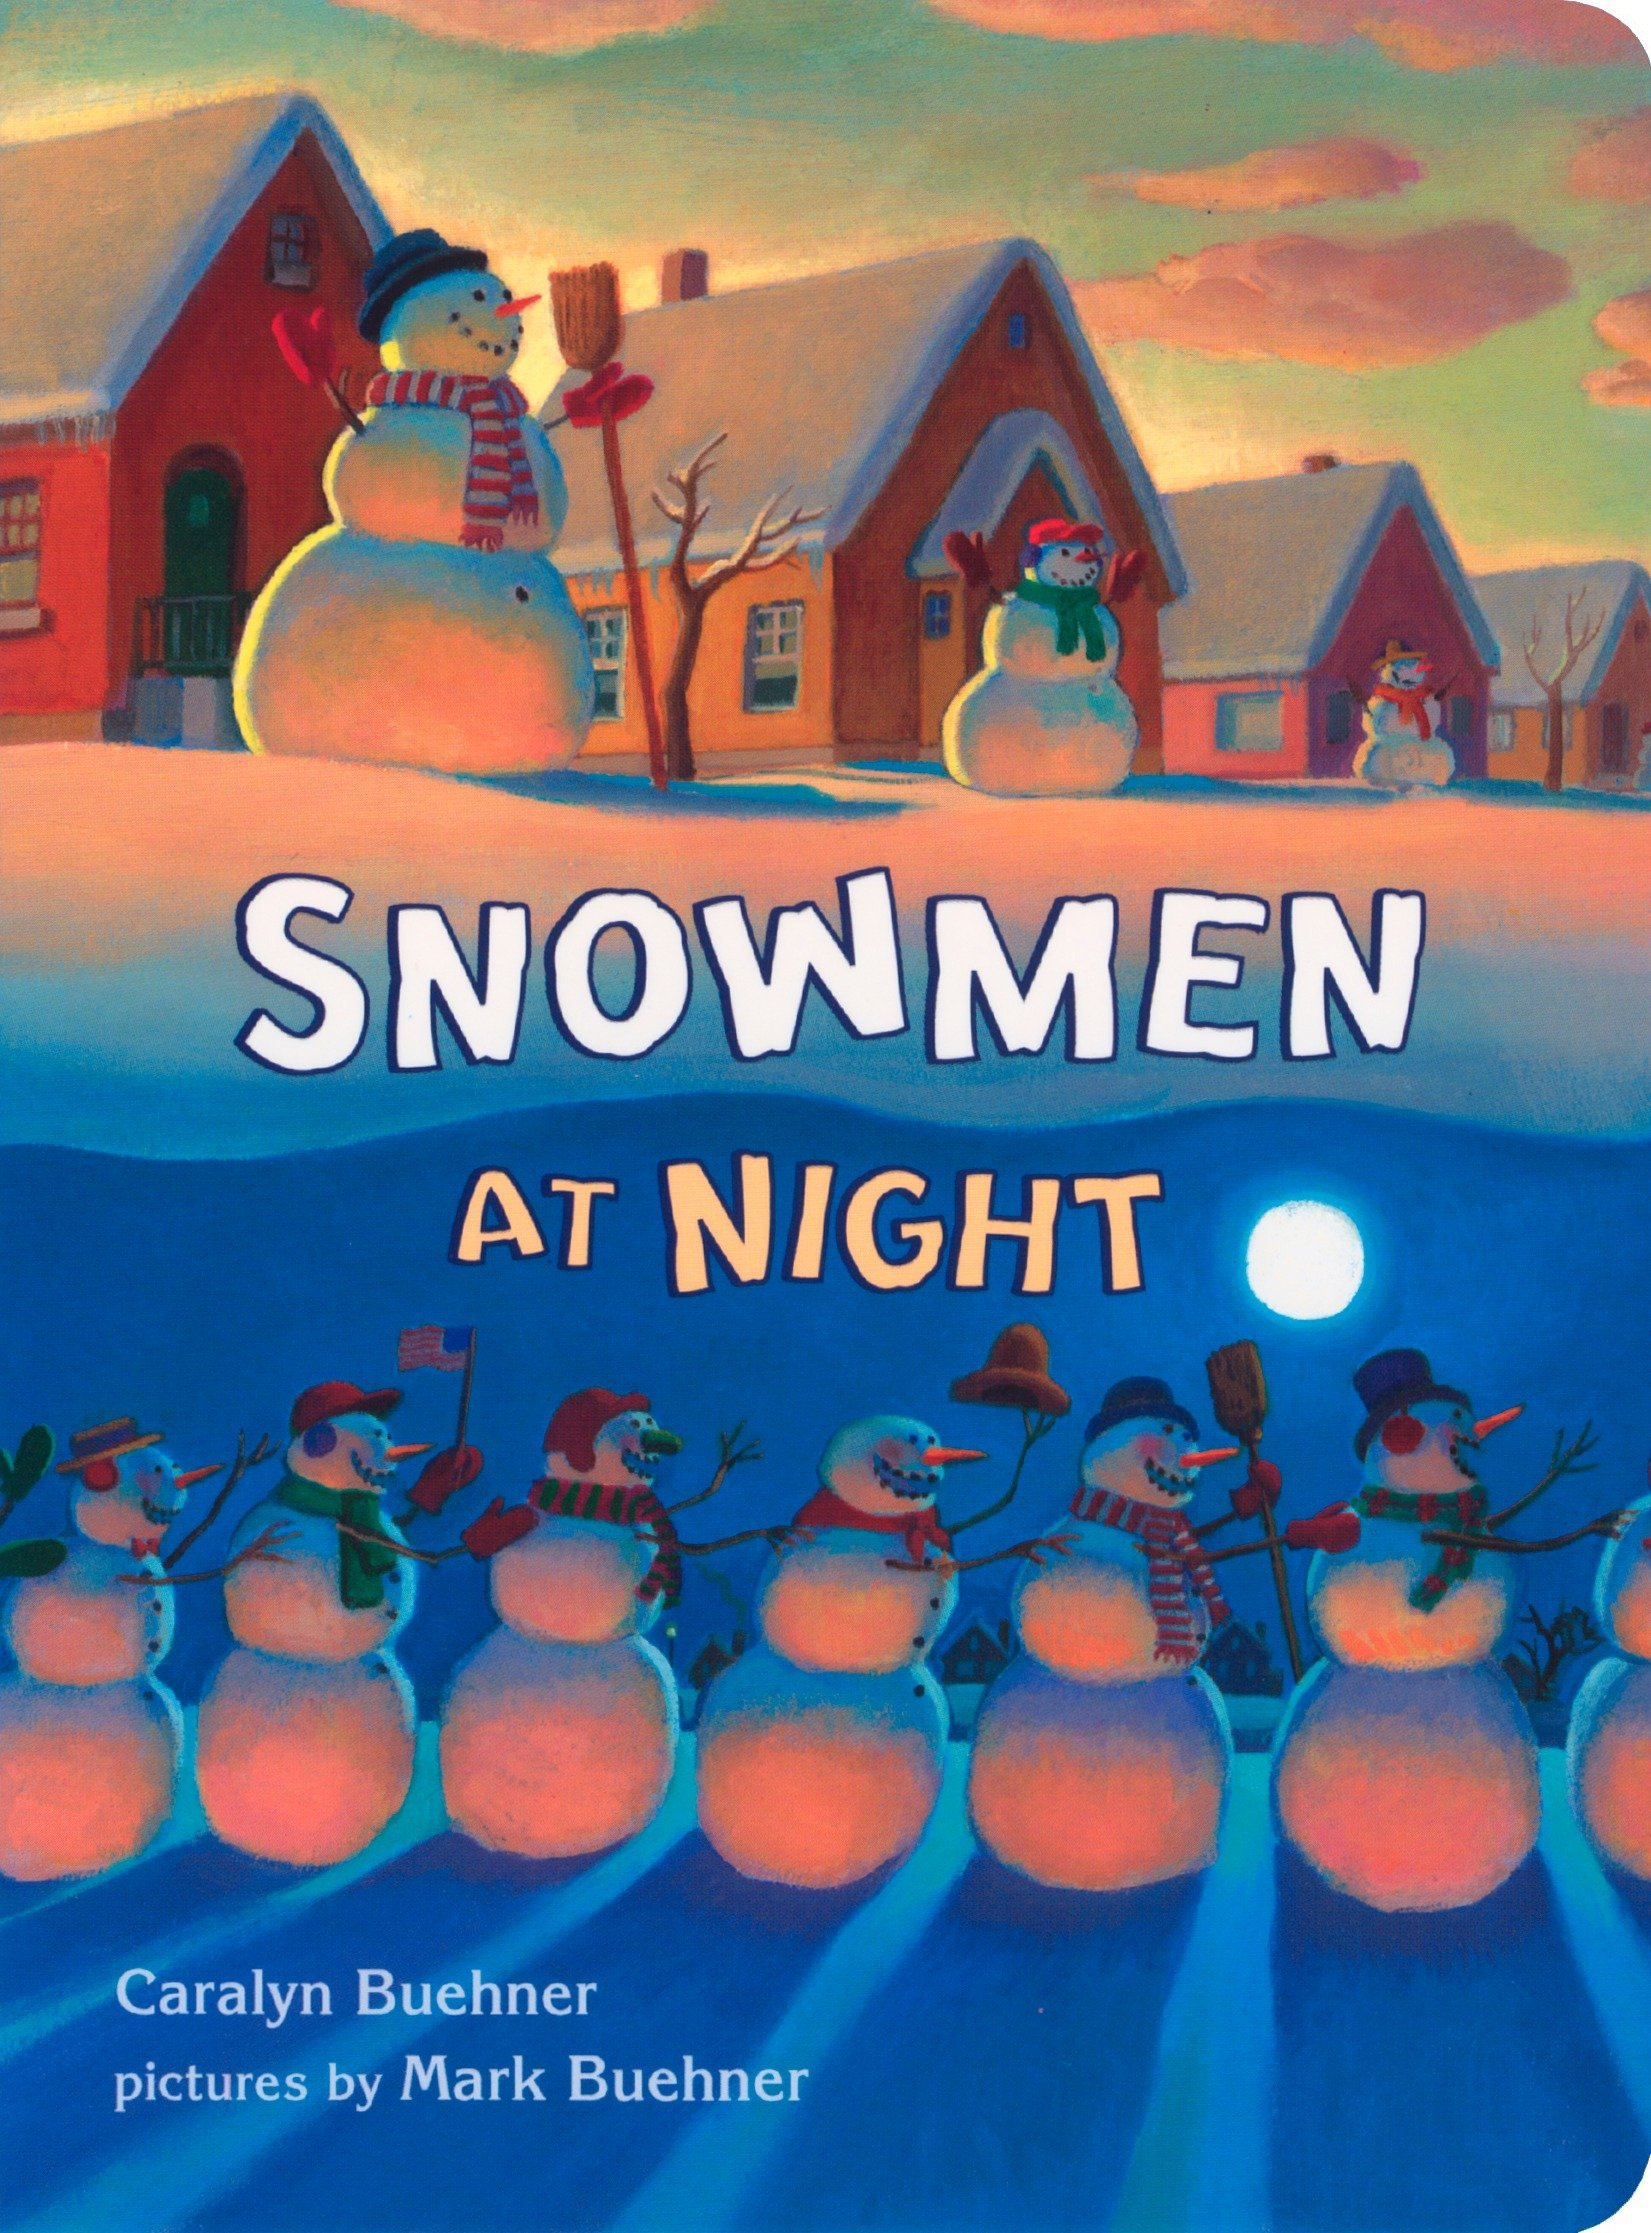 Image result for the night the snowmen came to life